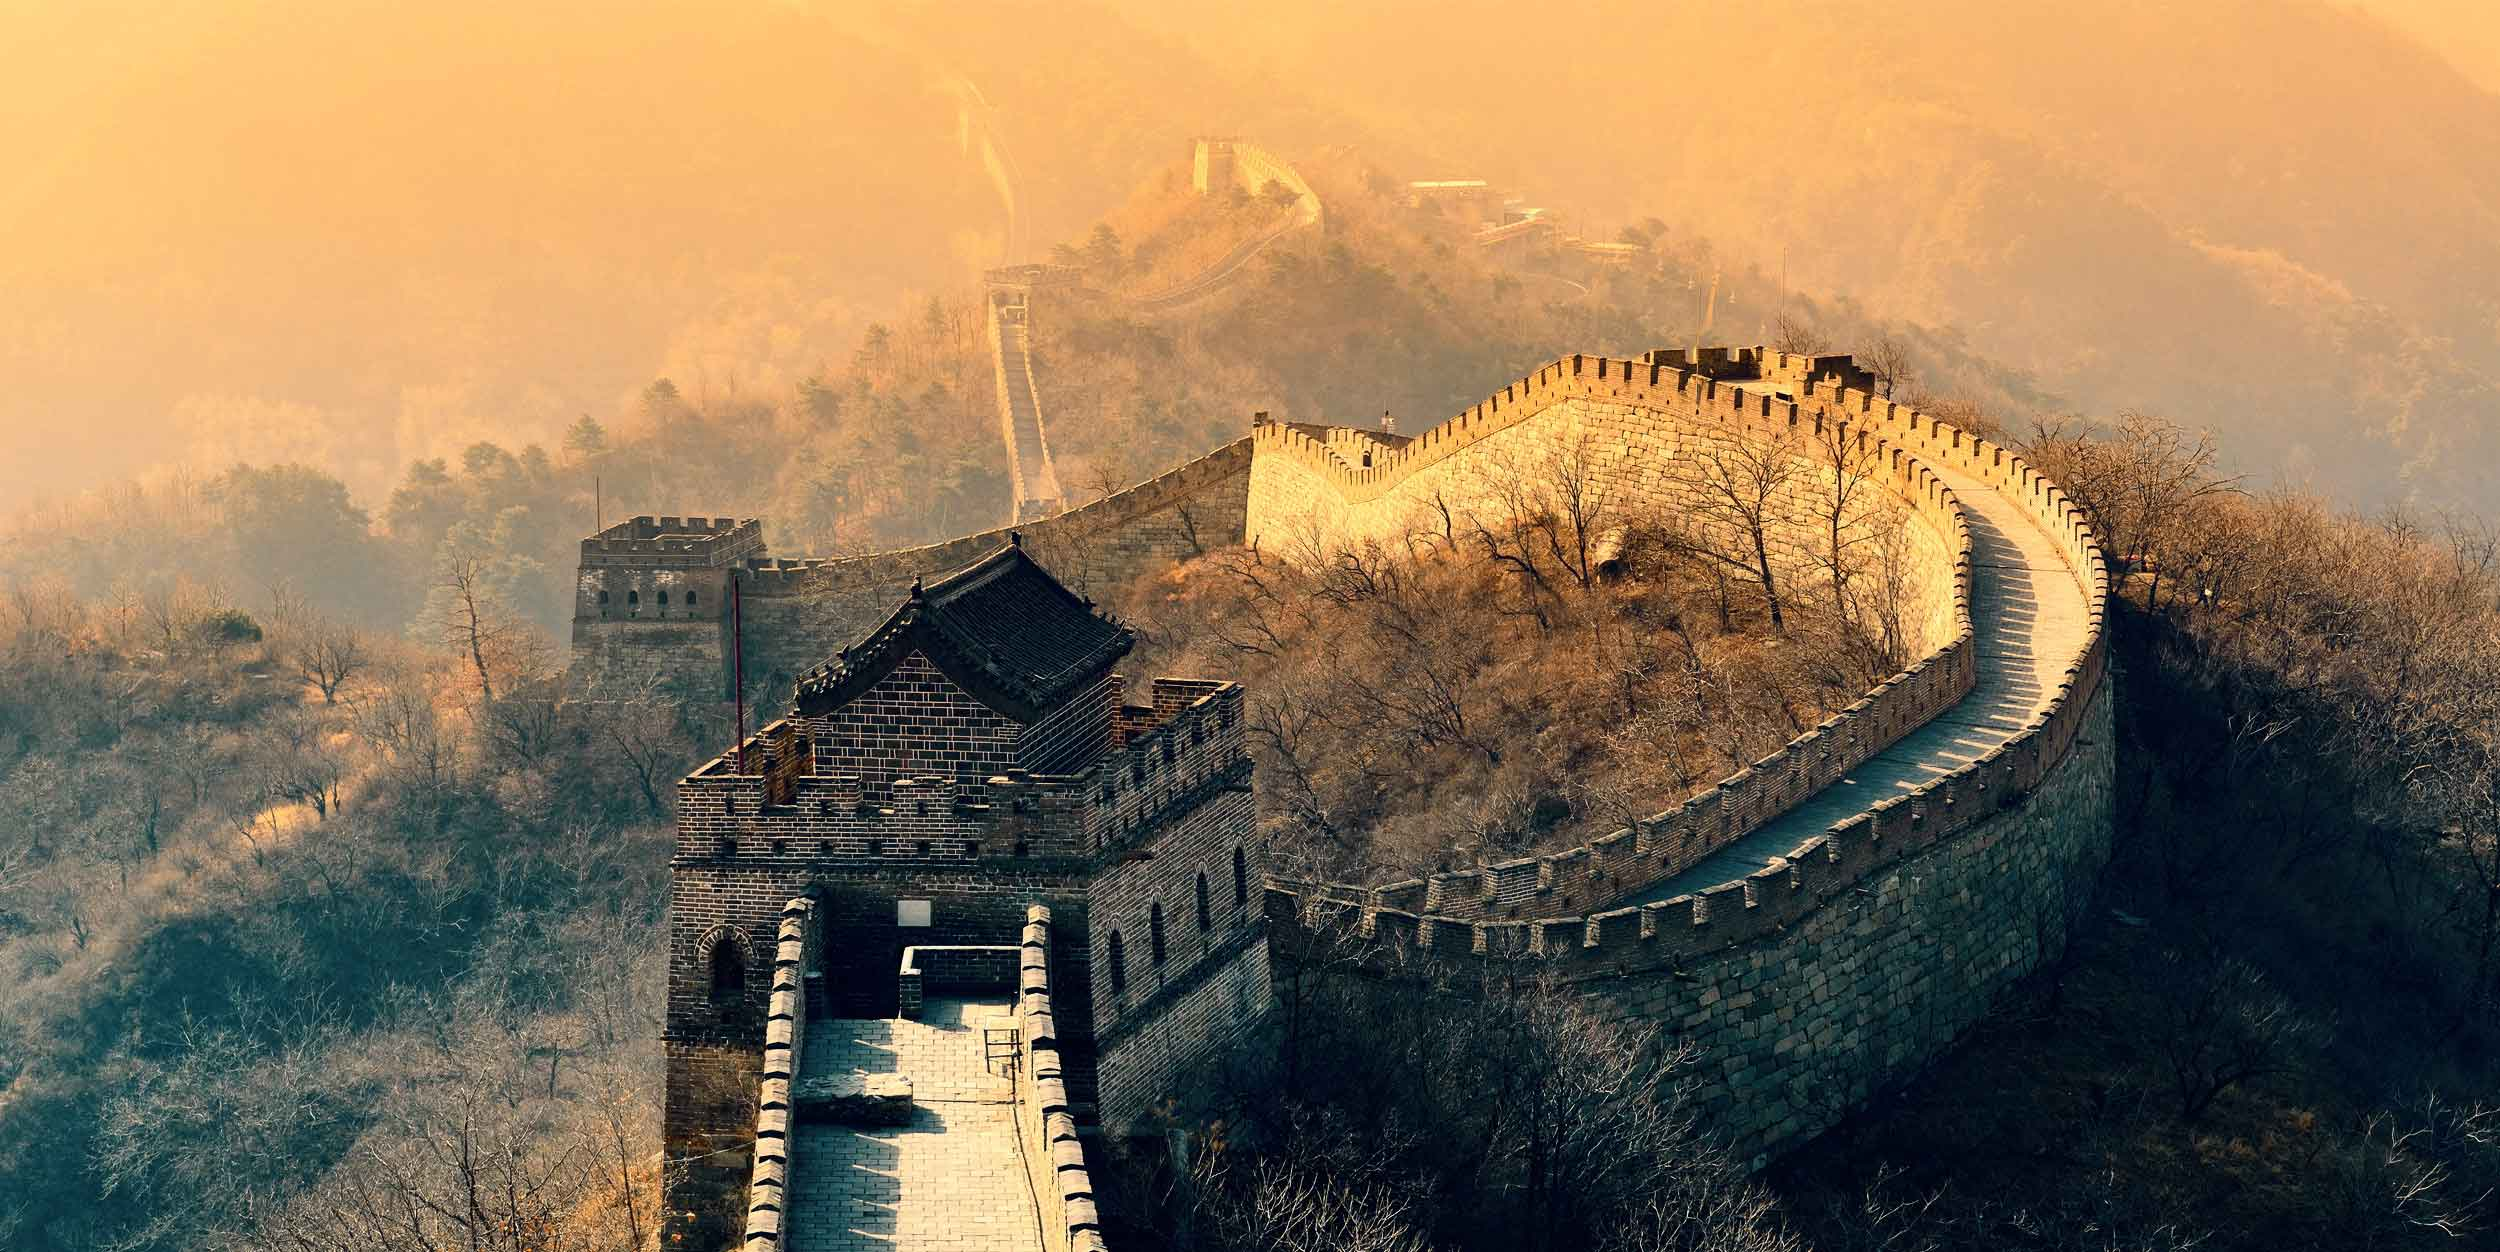 cultural highlights of china student tour prometour educational tours